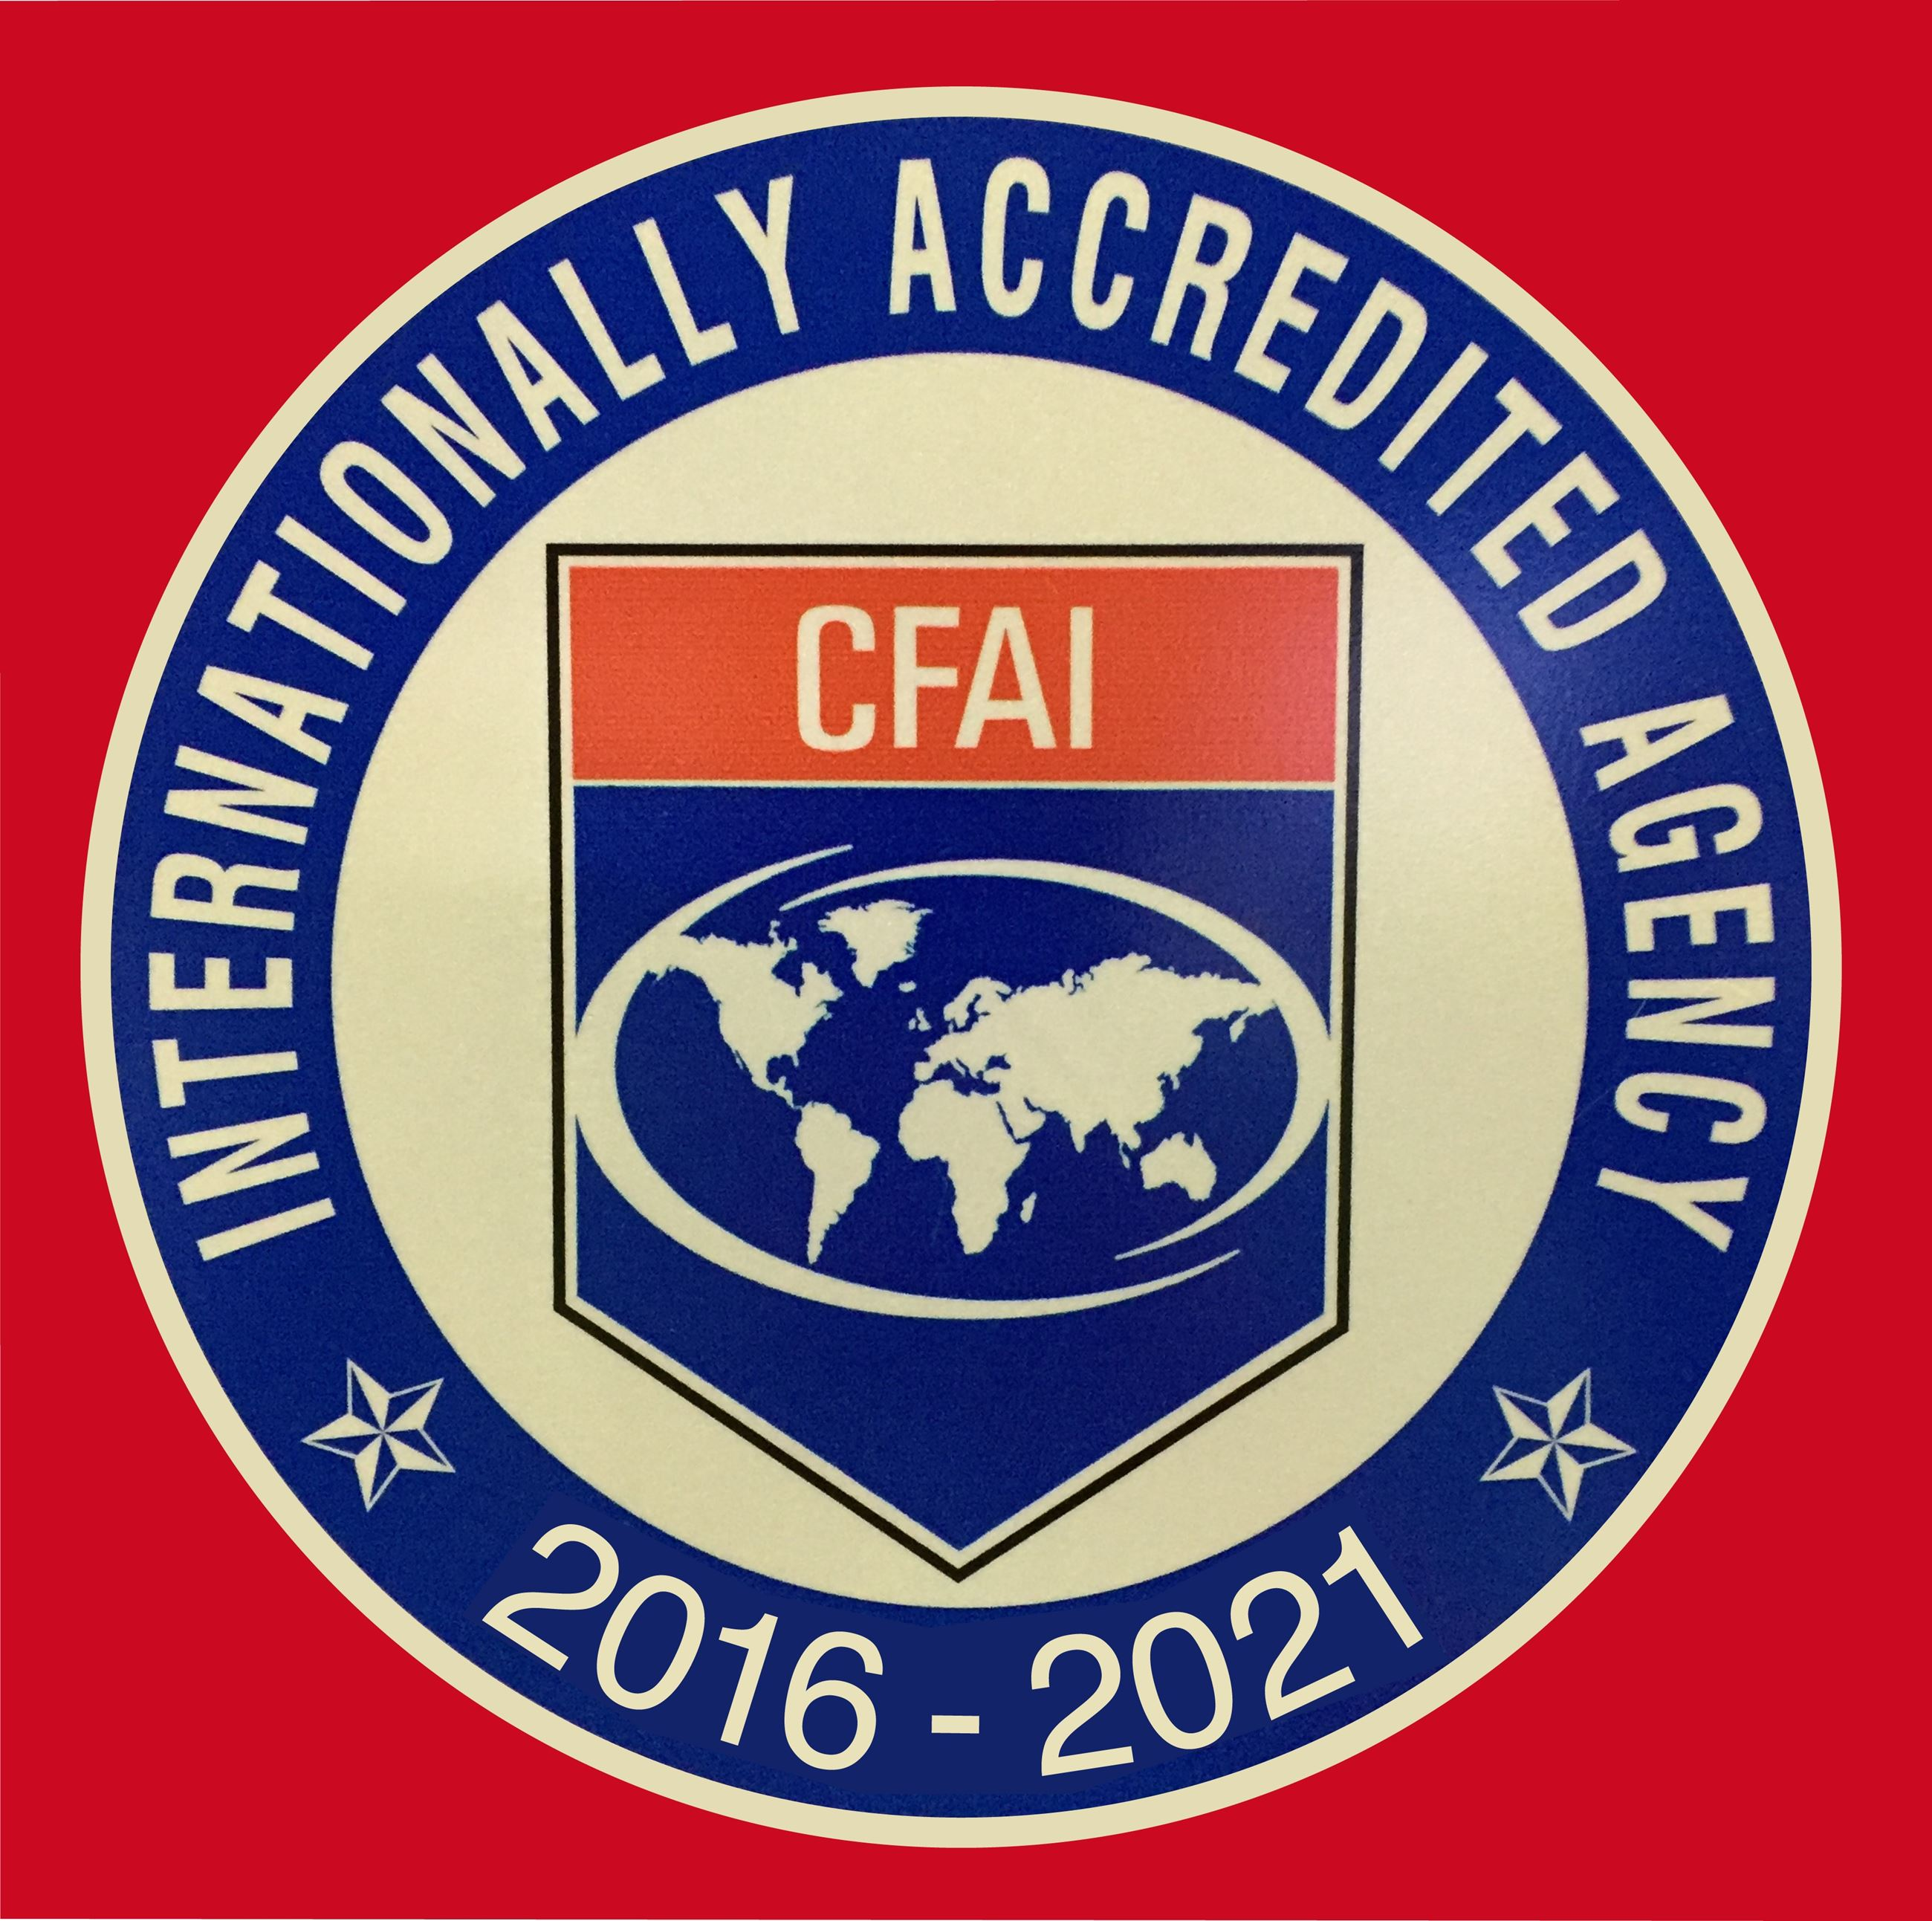 Internationally Accredited Agency 2016 to 2021